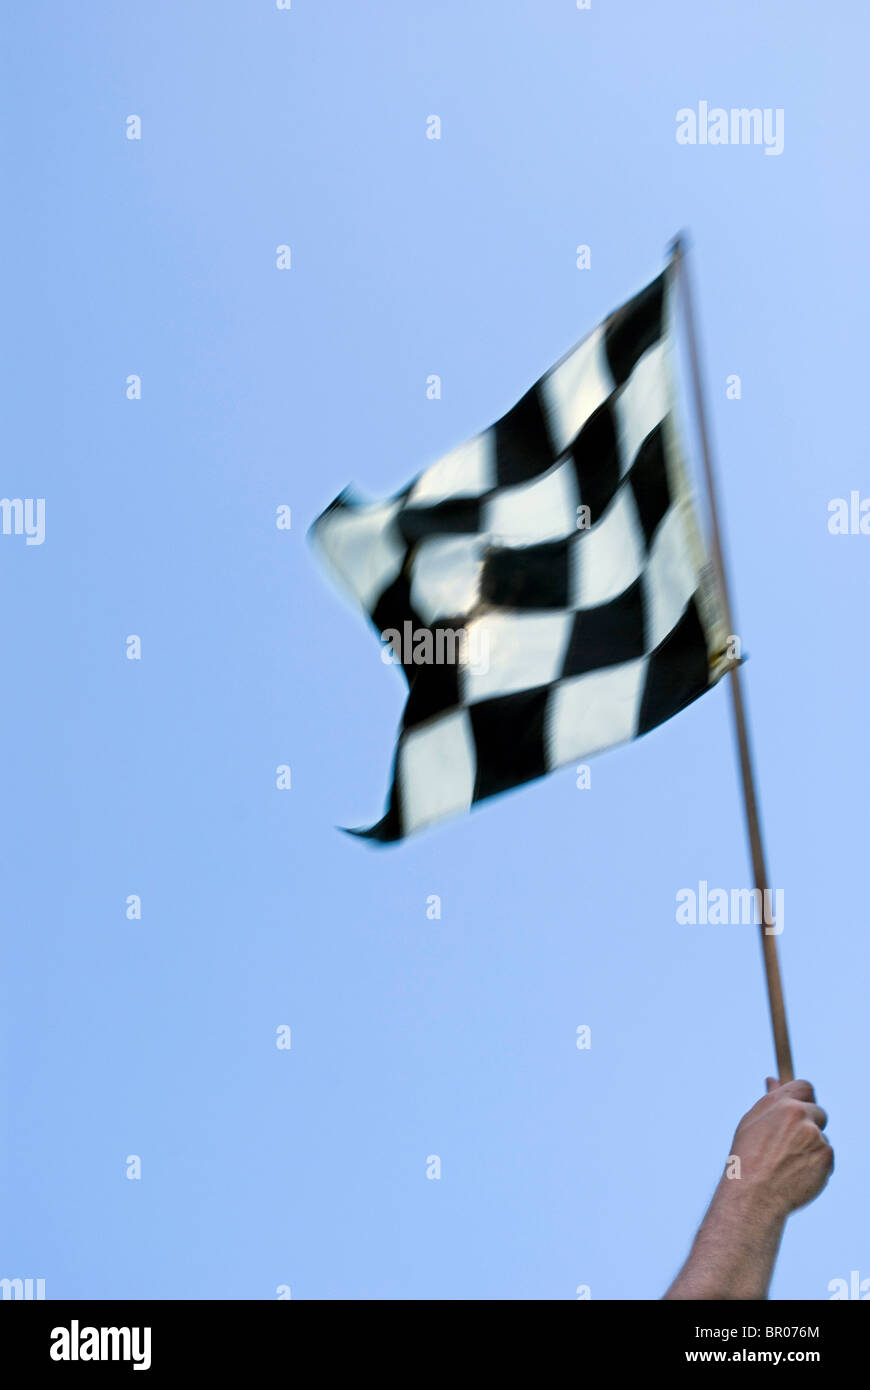 black and white checkered racing flag - Stock Image